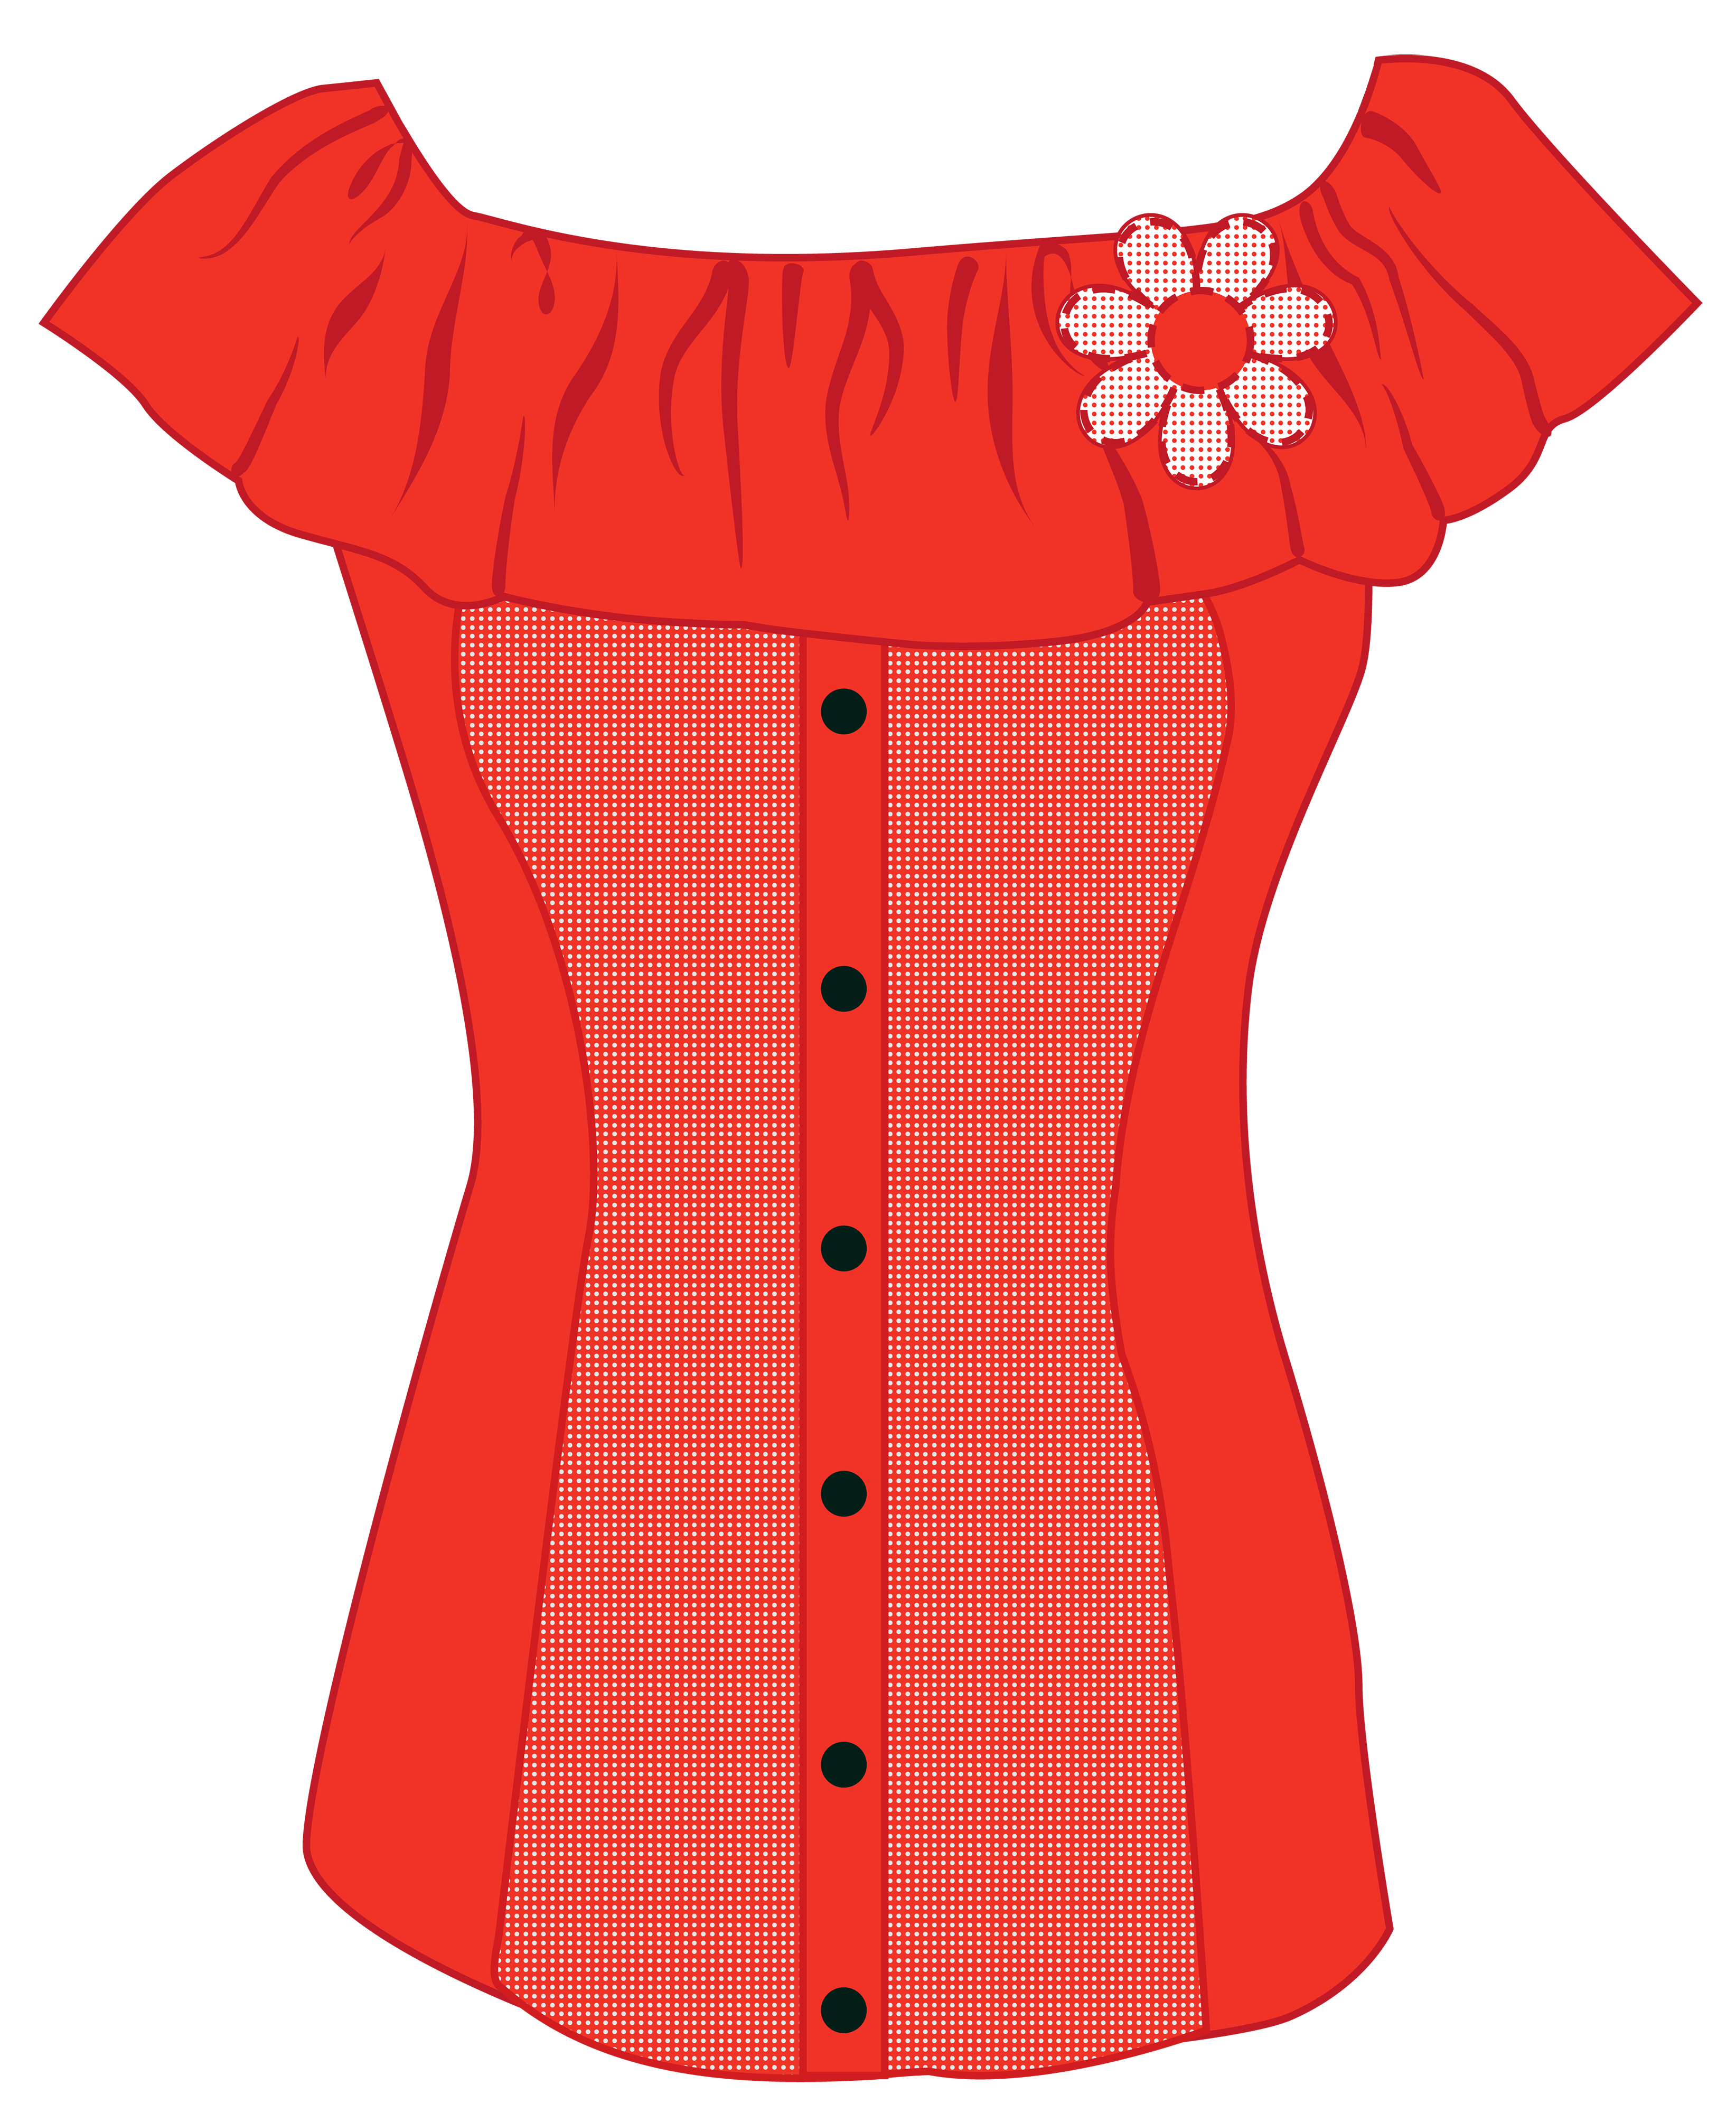 Hanging clothes clipart png. Female red top best